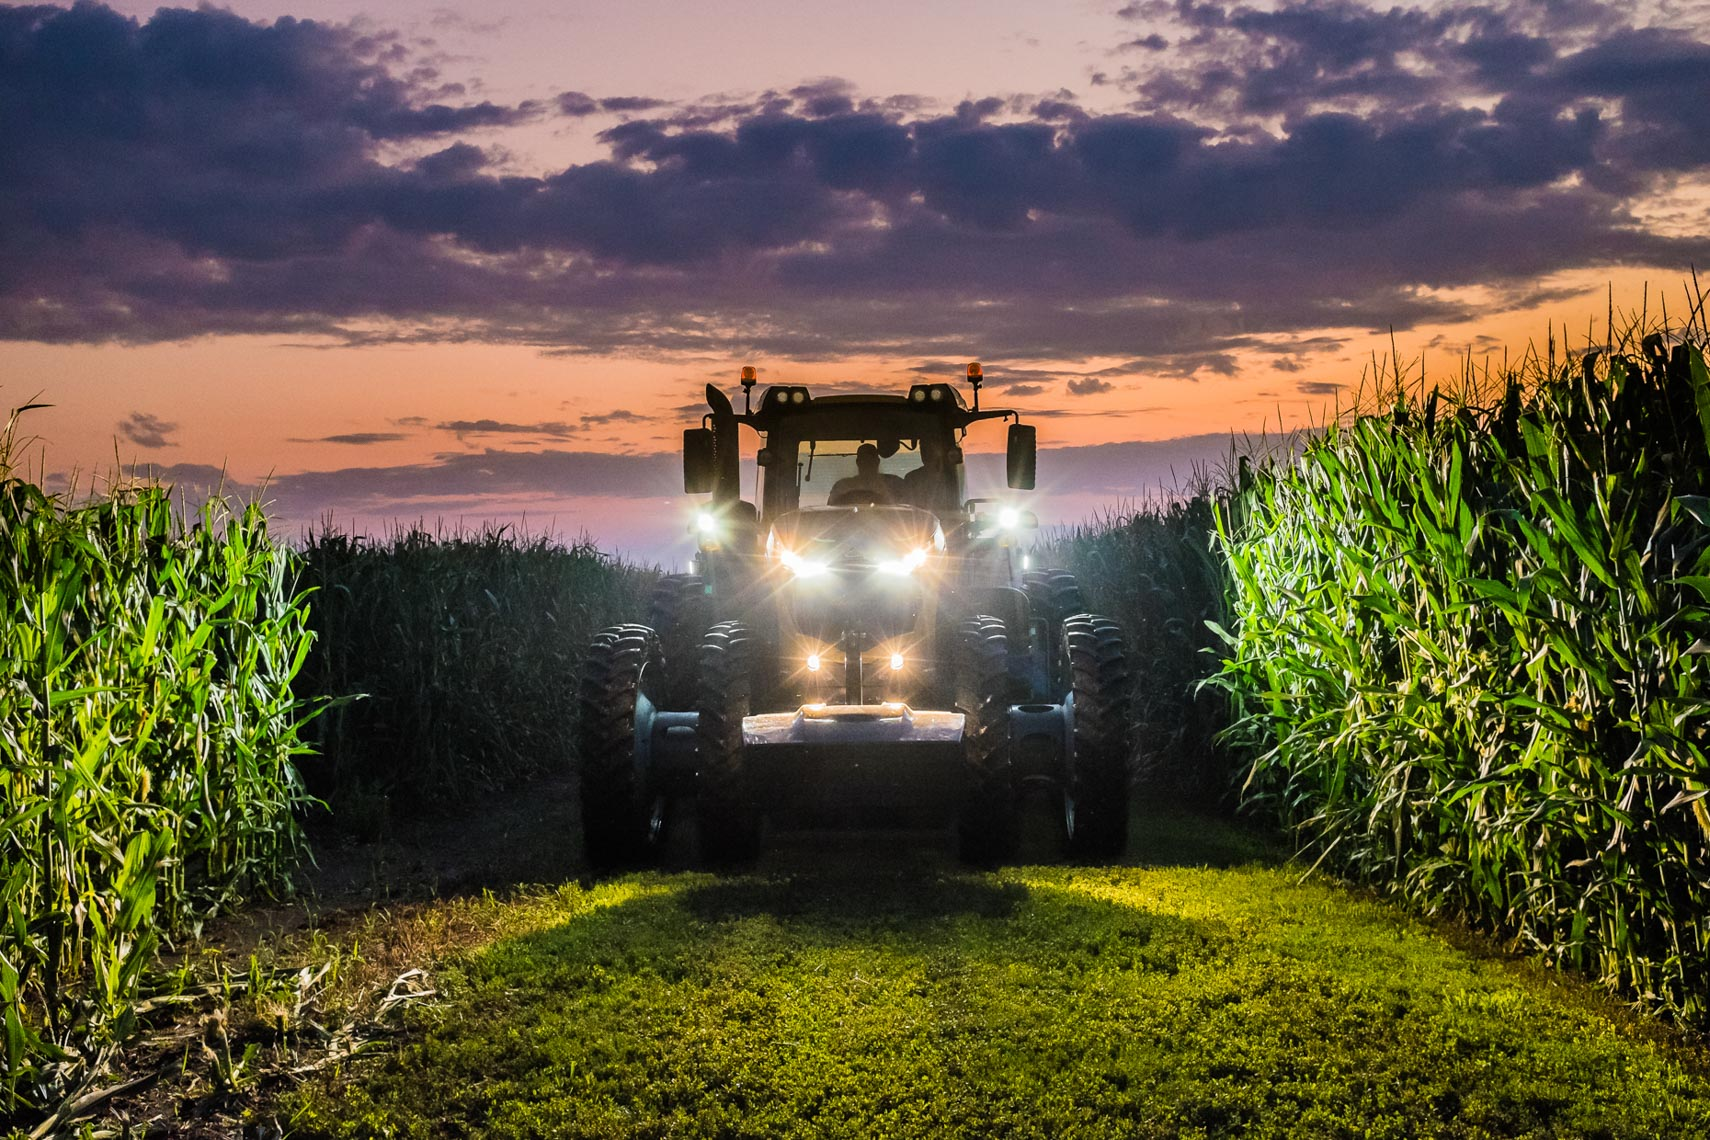 Night_Cornfield_Harvest_AGCO